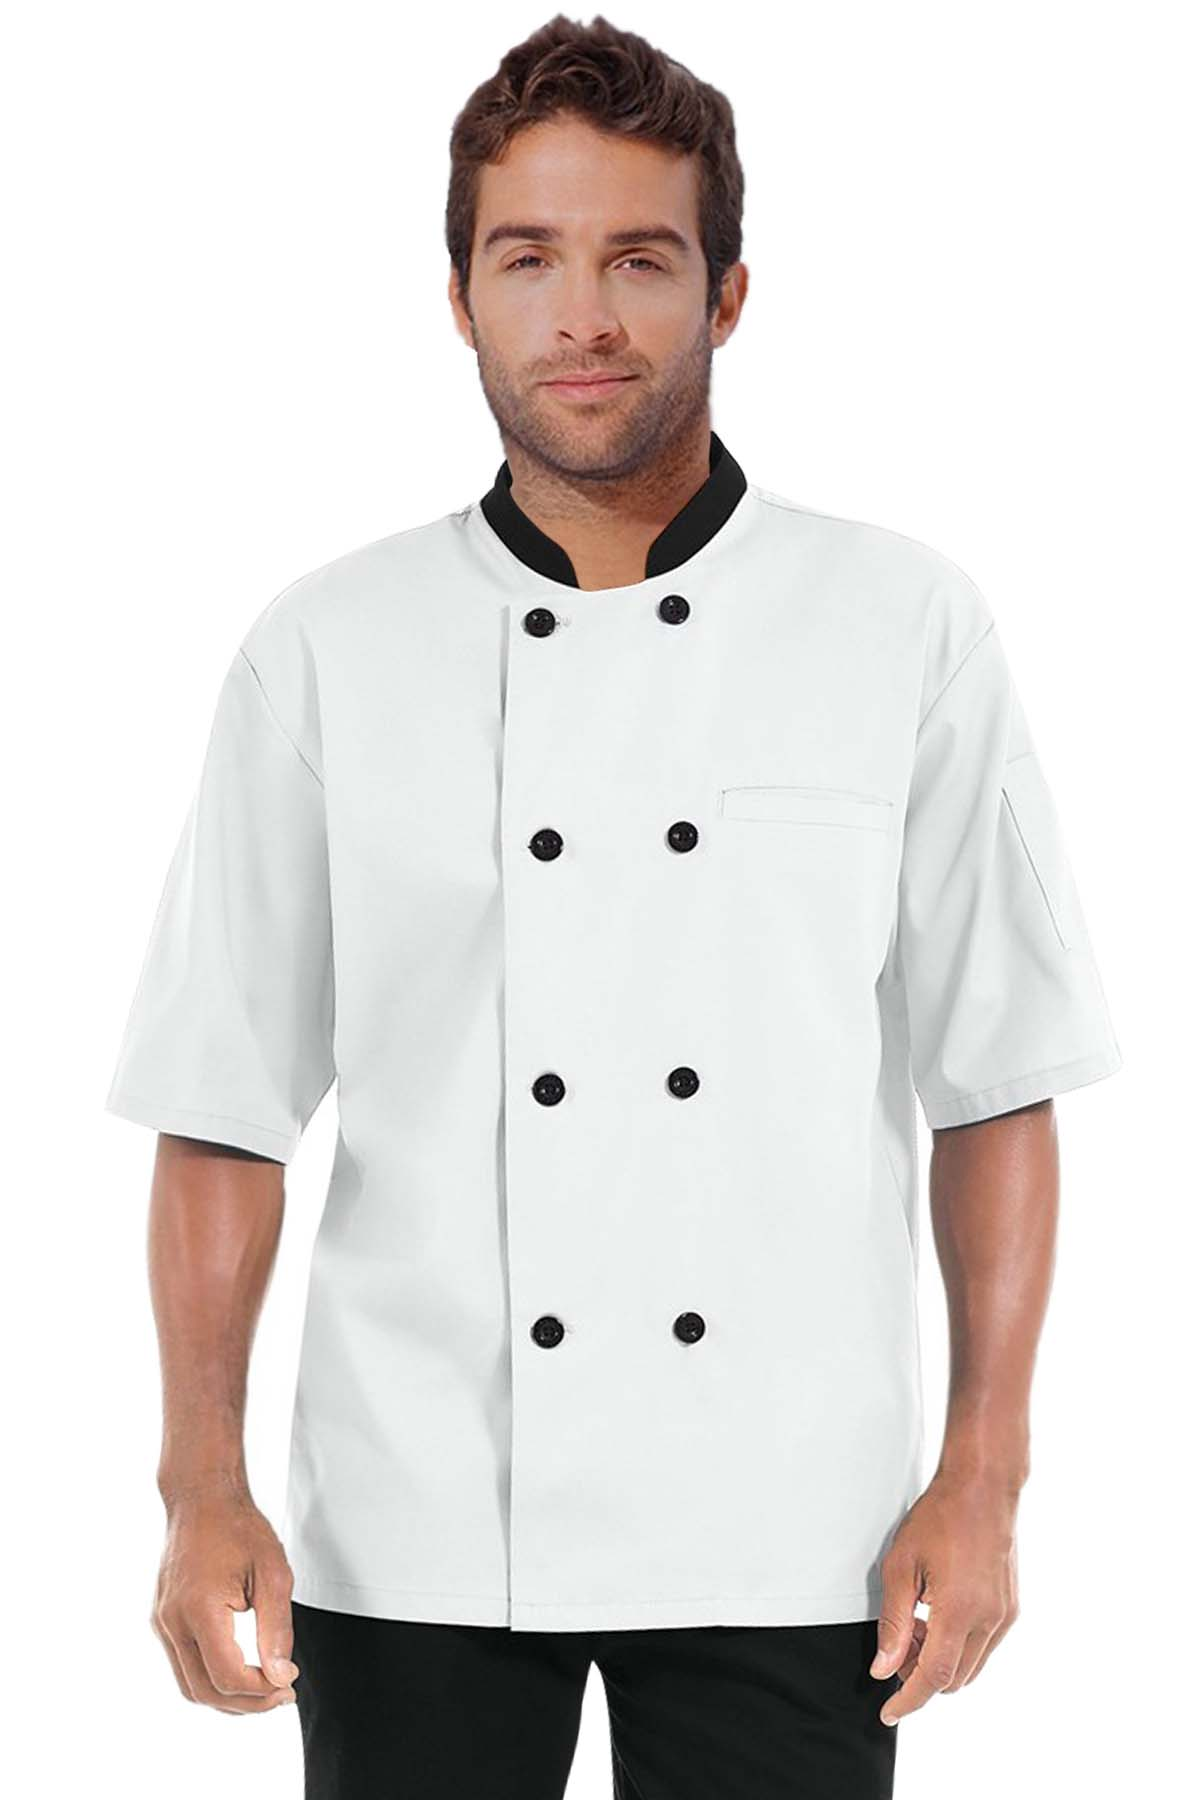 Poplin Men's Short Sleeve Chef Coat With 1 Chest pocket and 1 Sleeve Pocket - Button Front Closure - Contrasting collar and buttons (48 perc cotton 52 perc polyester Light Weight poplin)